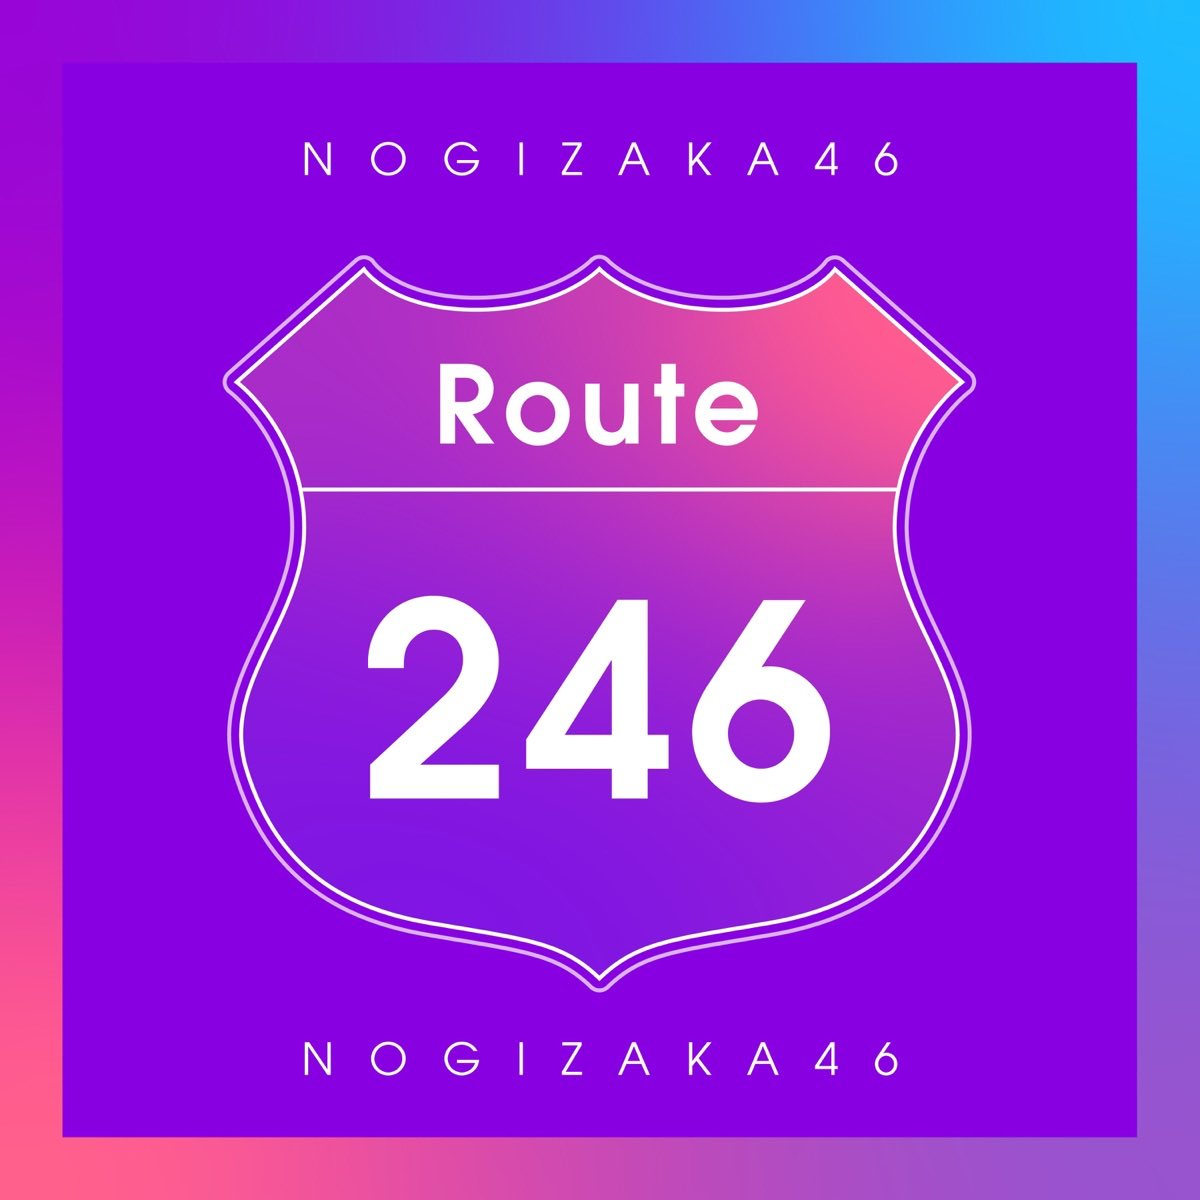 乃木坂46 - Route 246 Lyrics